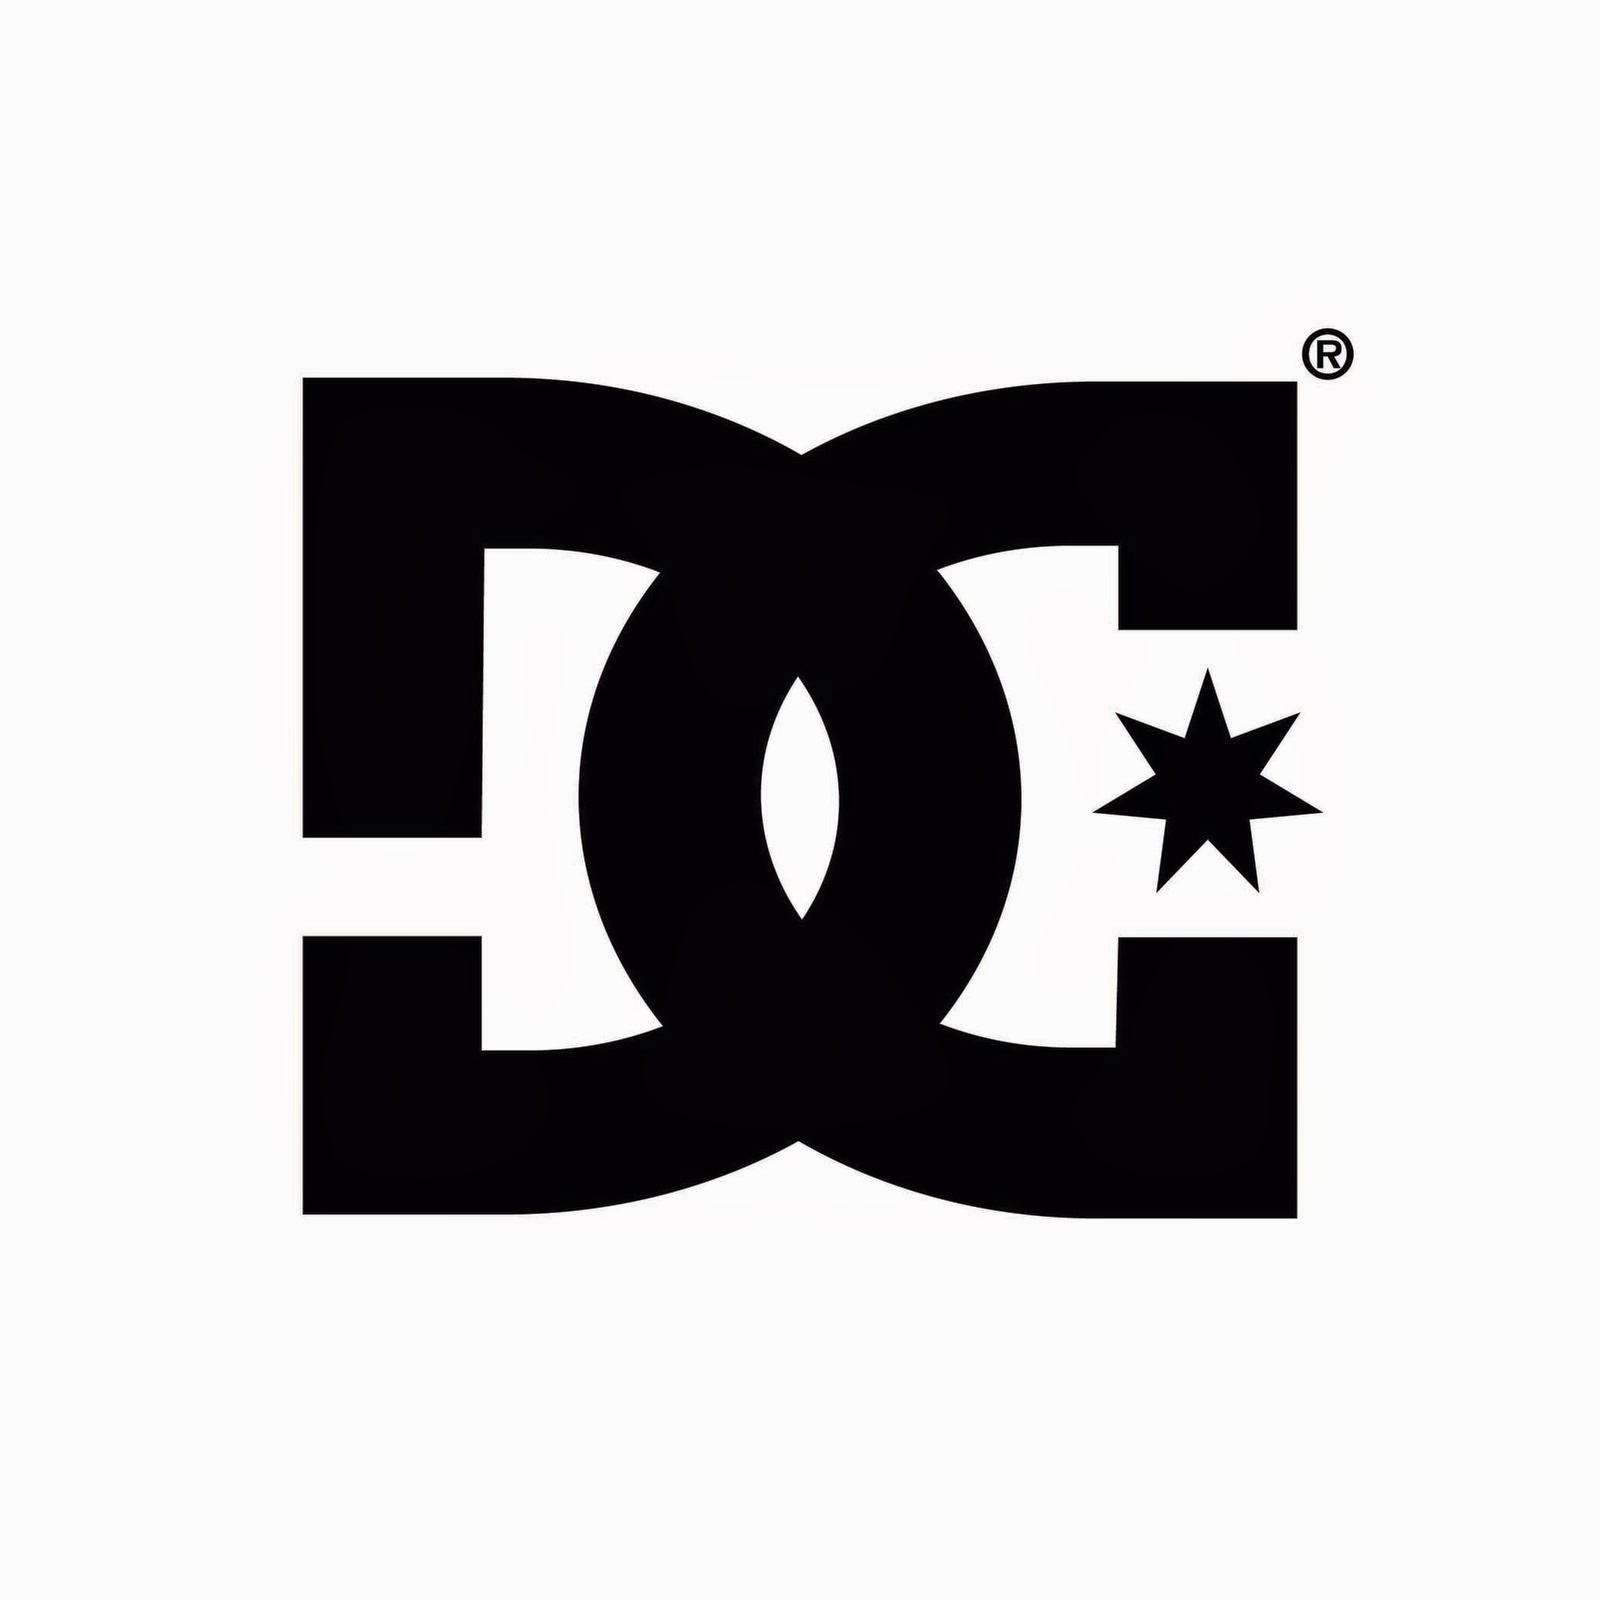 dc shoes logo wallpaper hd skateboard wallpaper hd rh skateboardwallpaperhd blogspot com dc logo wallpaper free download dc logo wallpaper hd